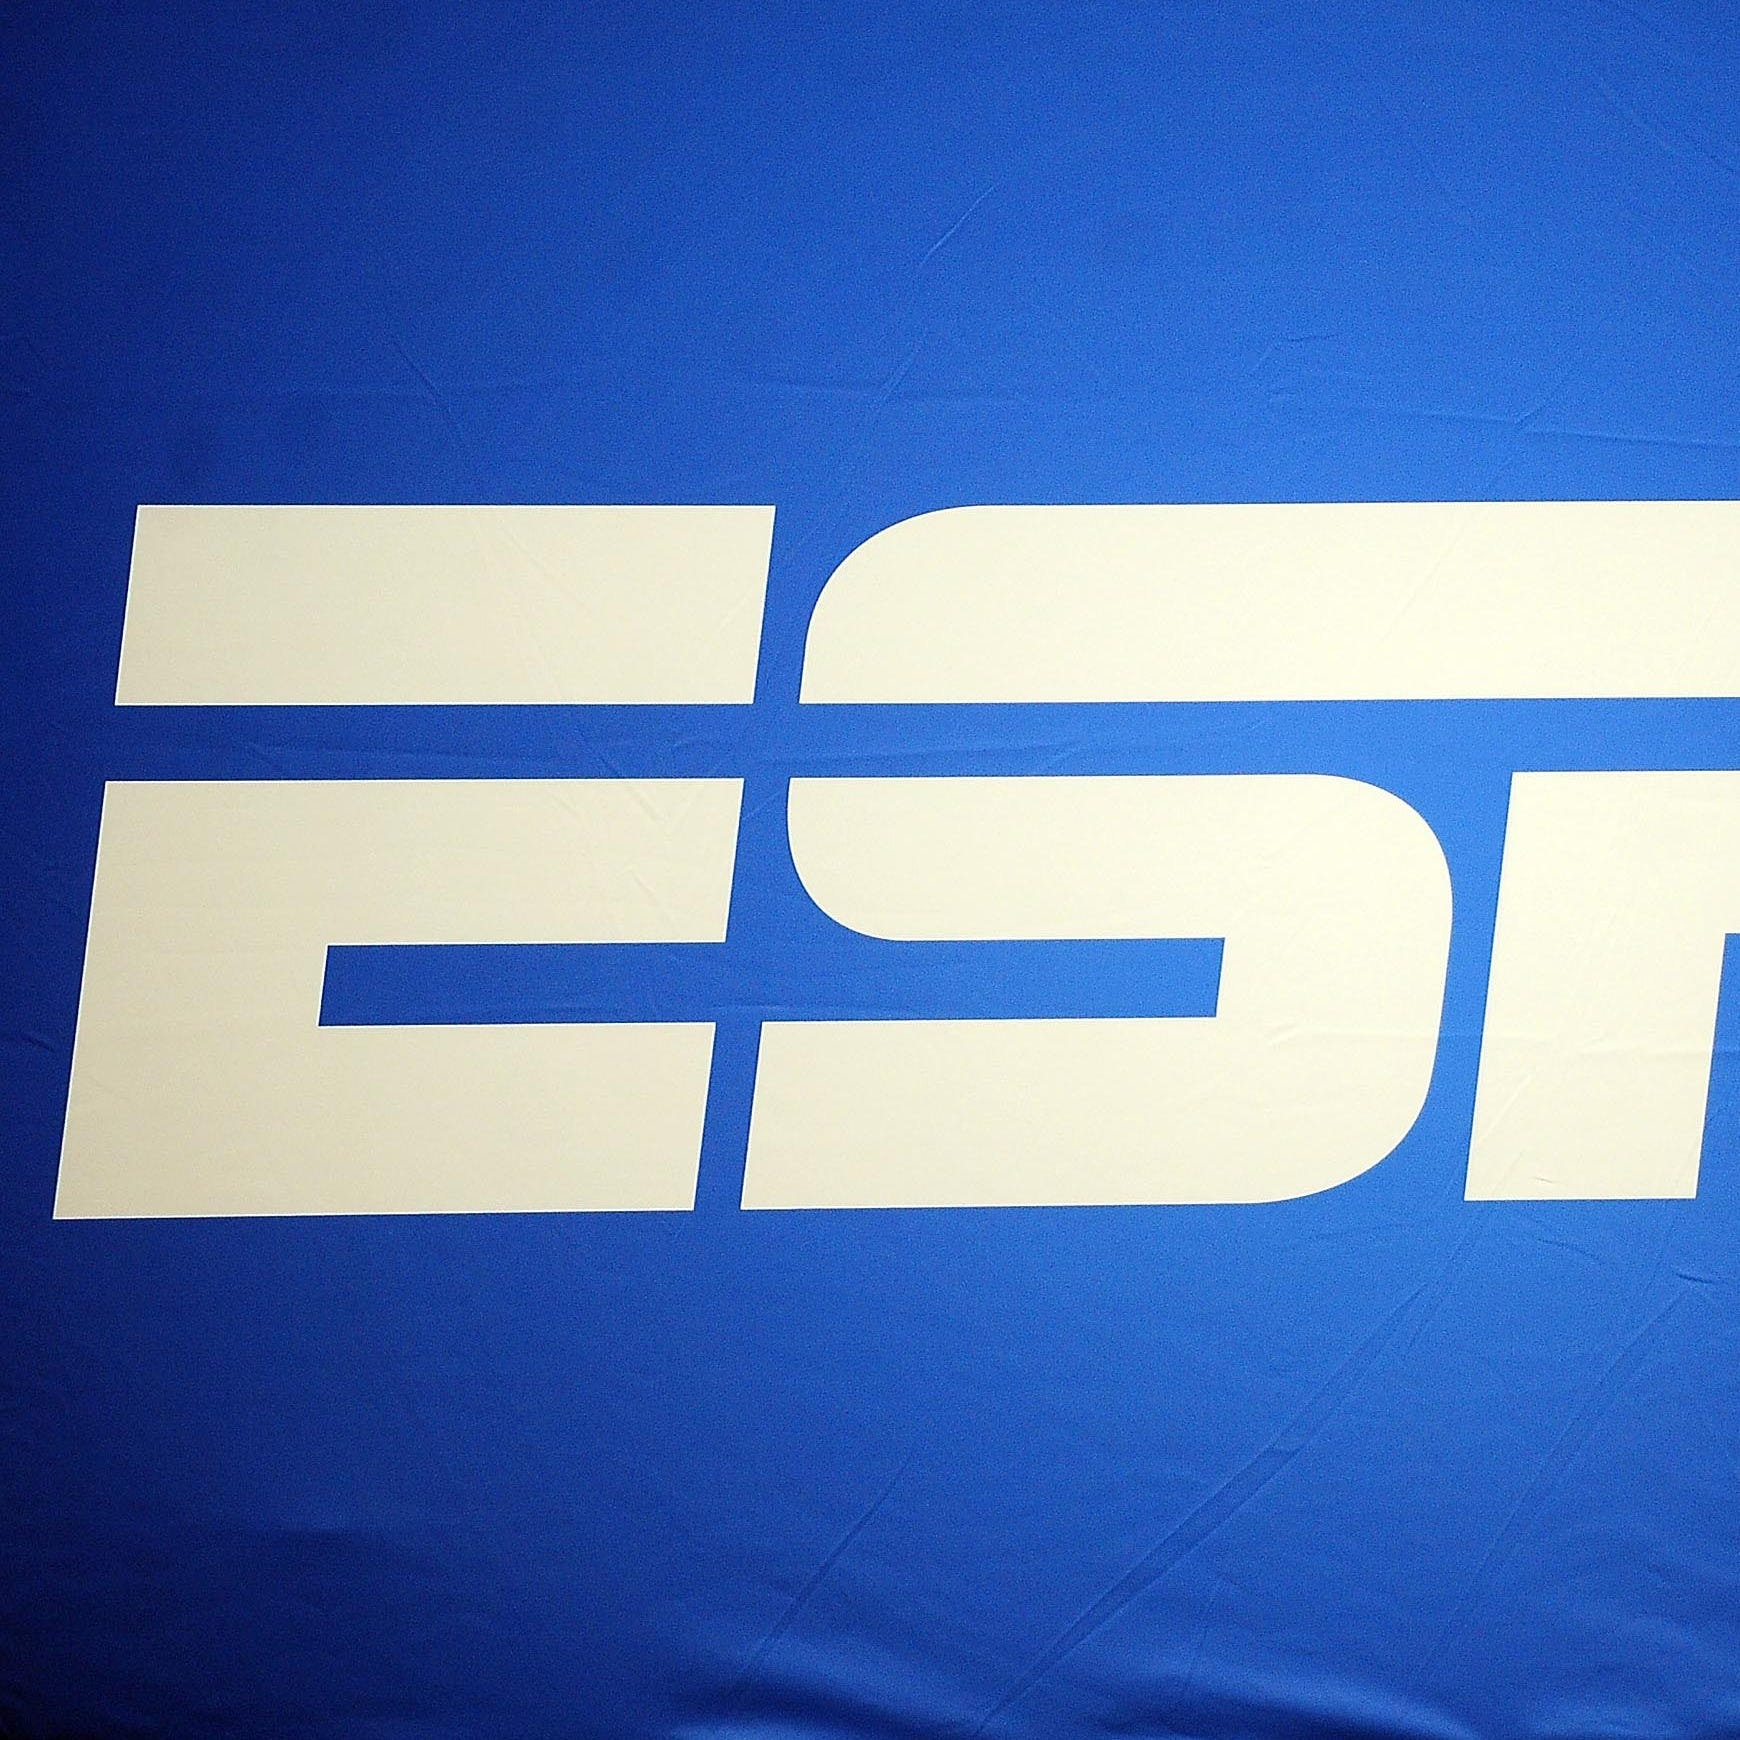 ESPN changes slogan online, but are they still the Worldwide Leader in Sports?